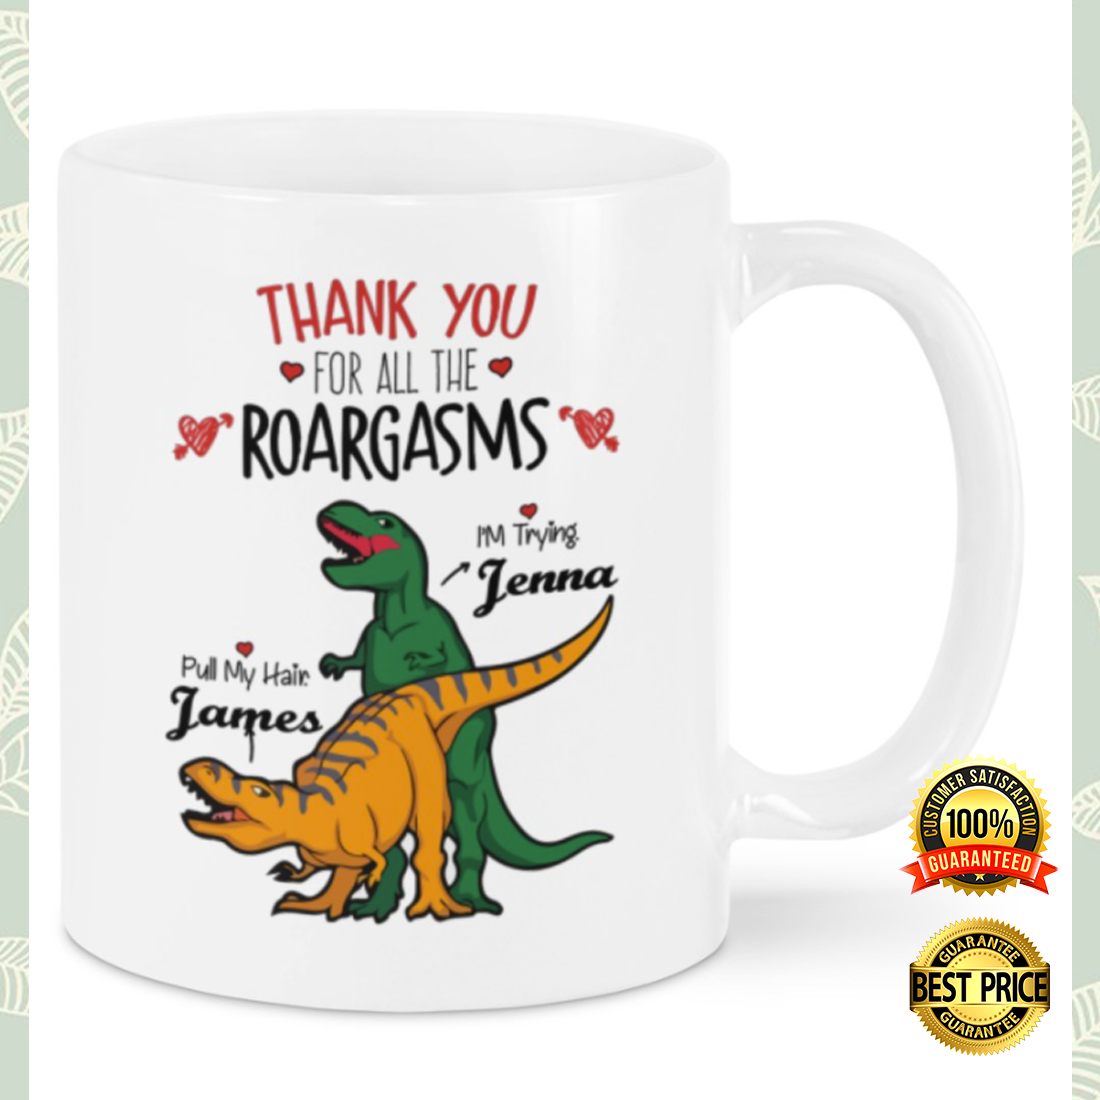 PERSONALIZED THANK YOU FOR ALL THE ROARGASMS MUG 6